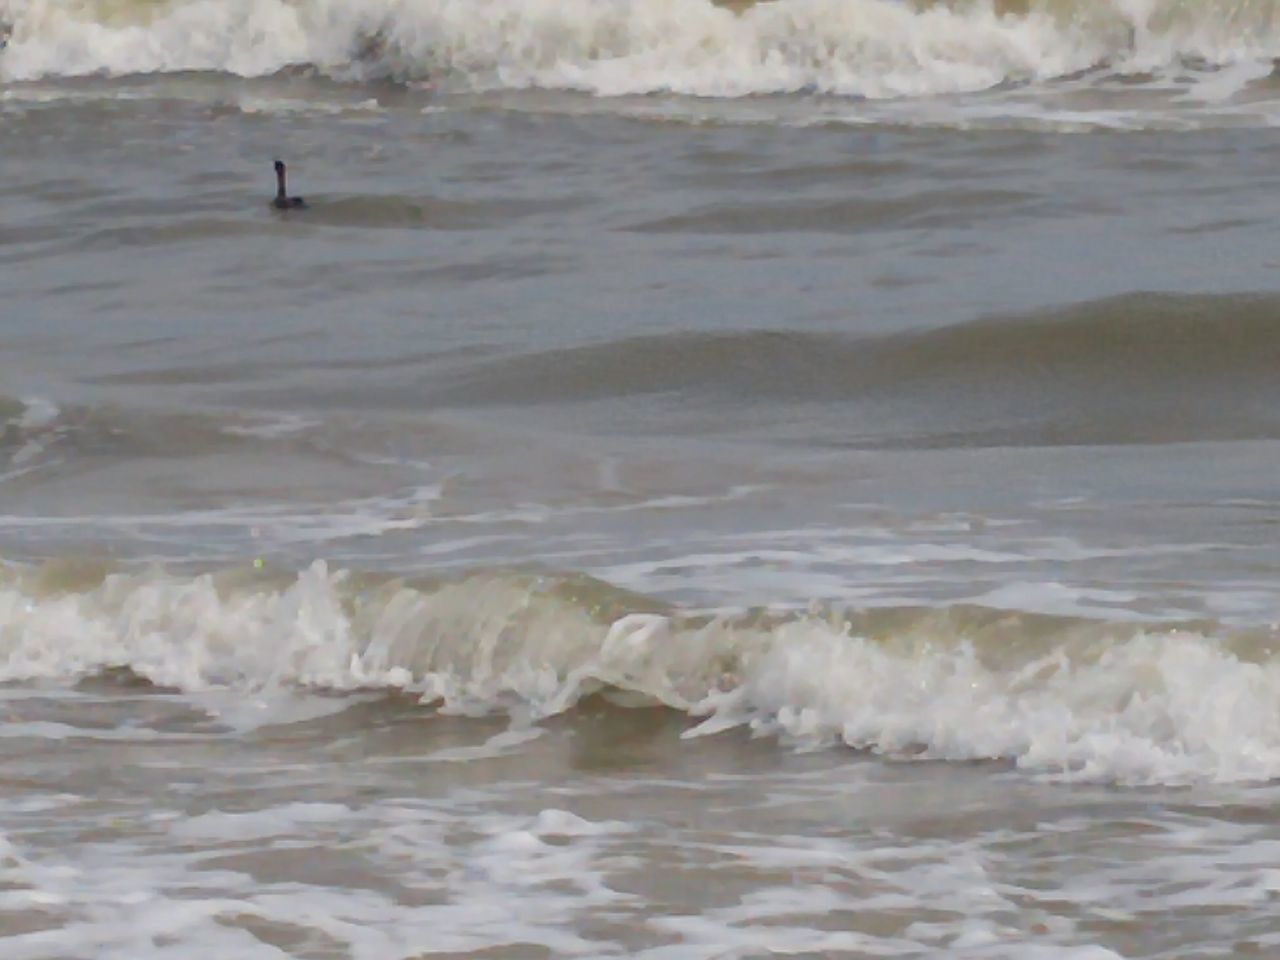 wave, water, sea, nature, beach, outdoors, waterfront, beauty in nature, sand, day, bird, no people, swimming